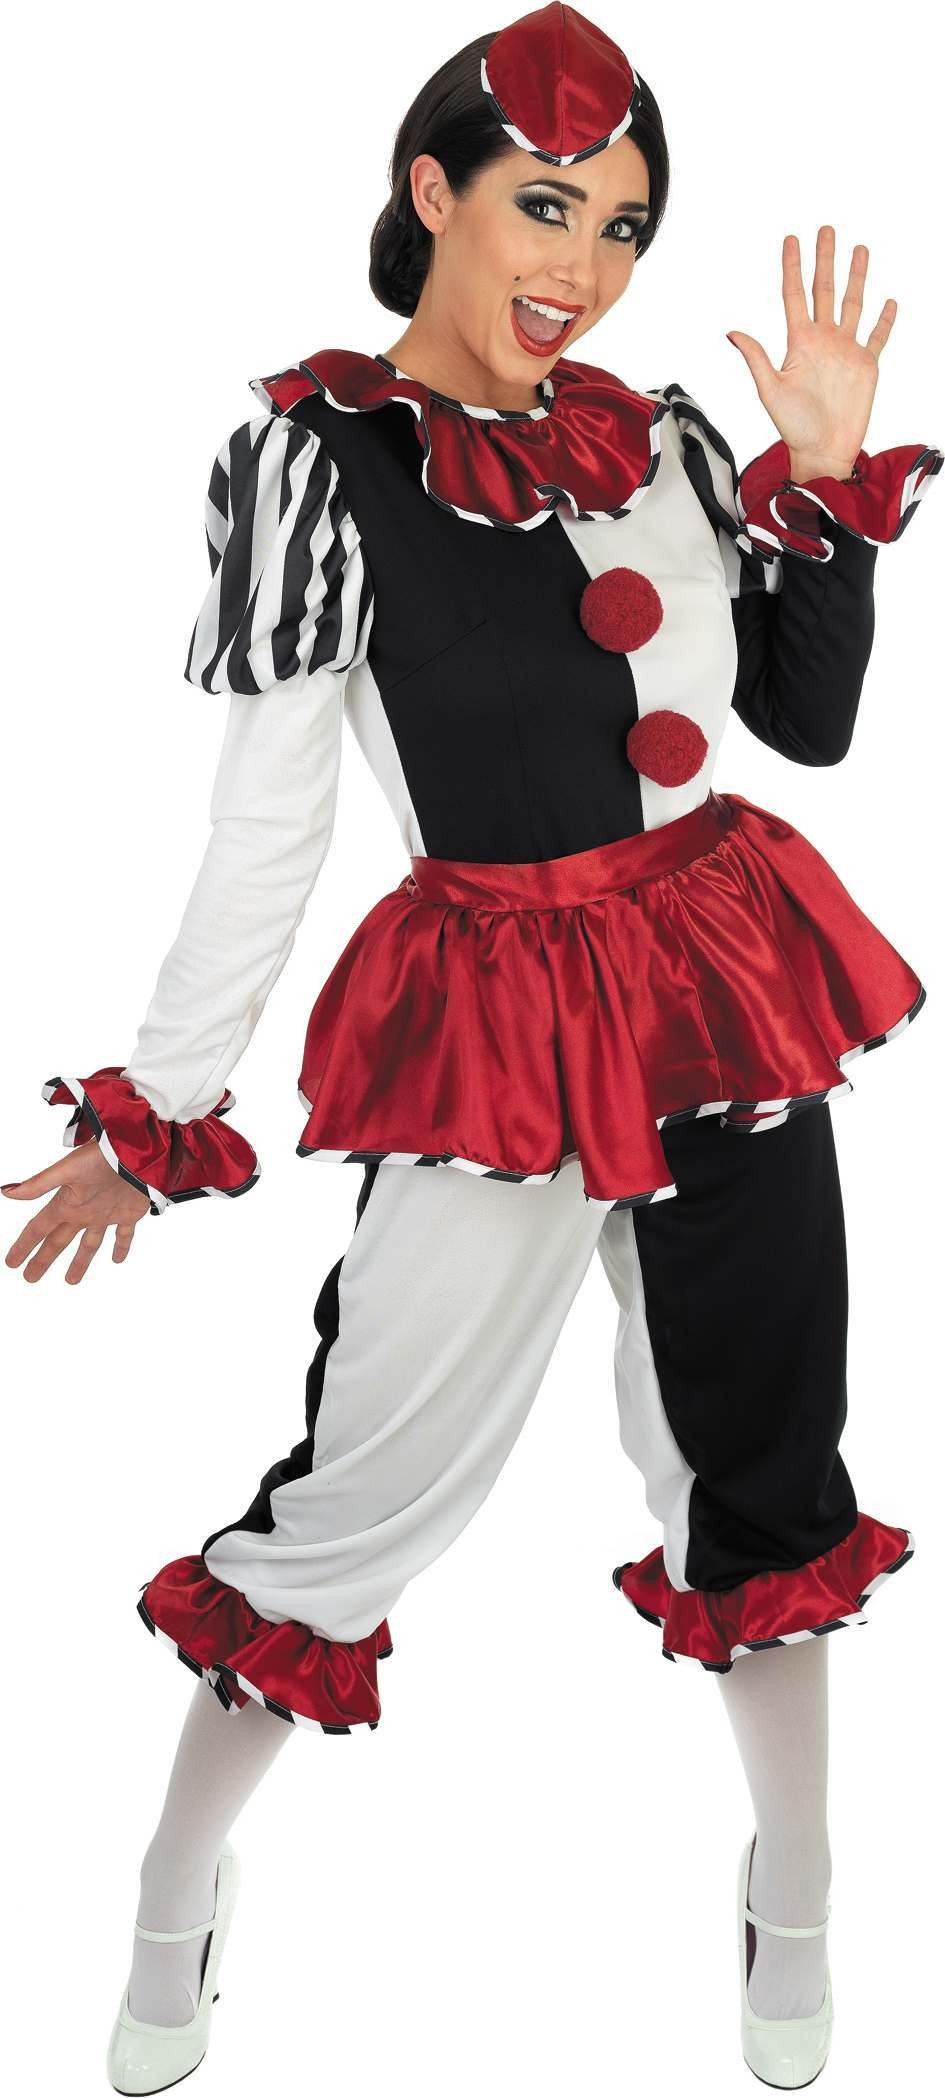 Harlequin Clown Fancy Dress Costume